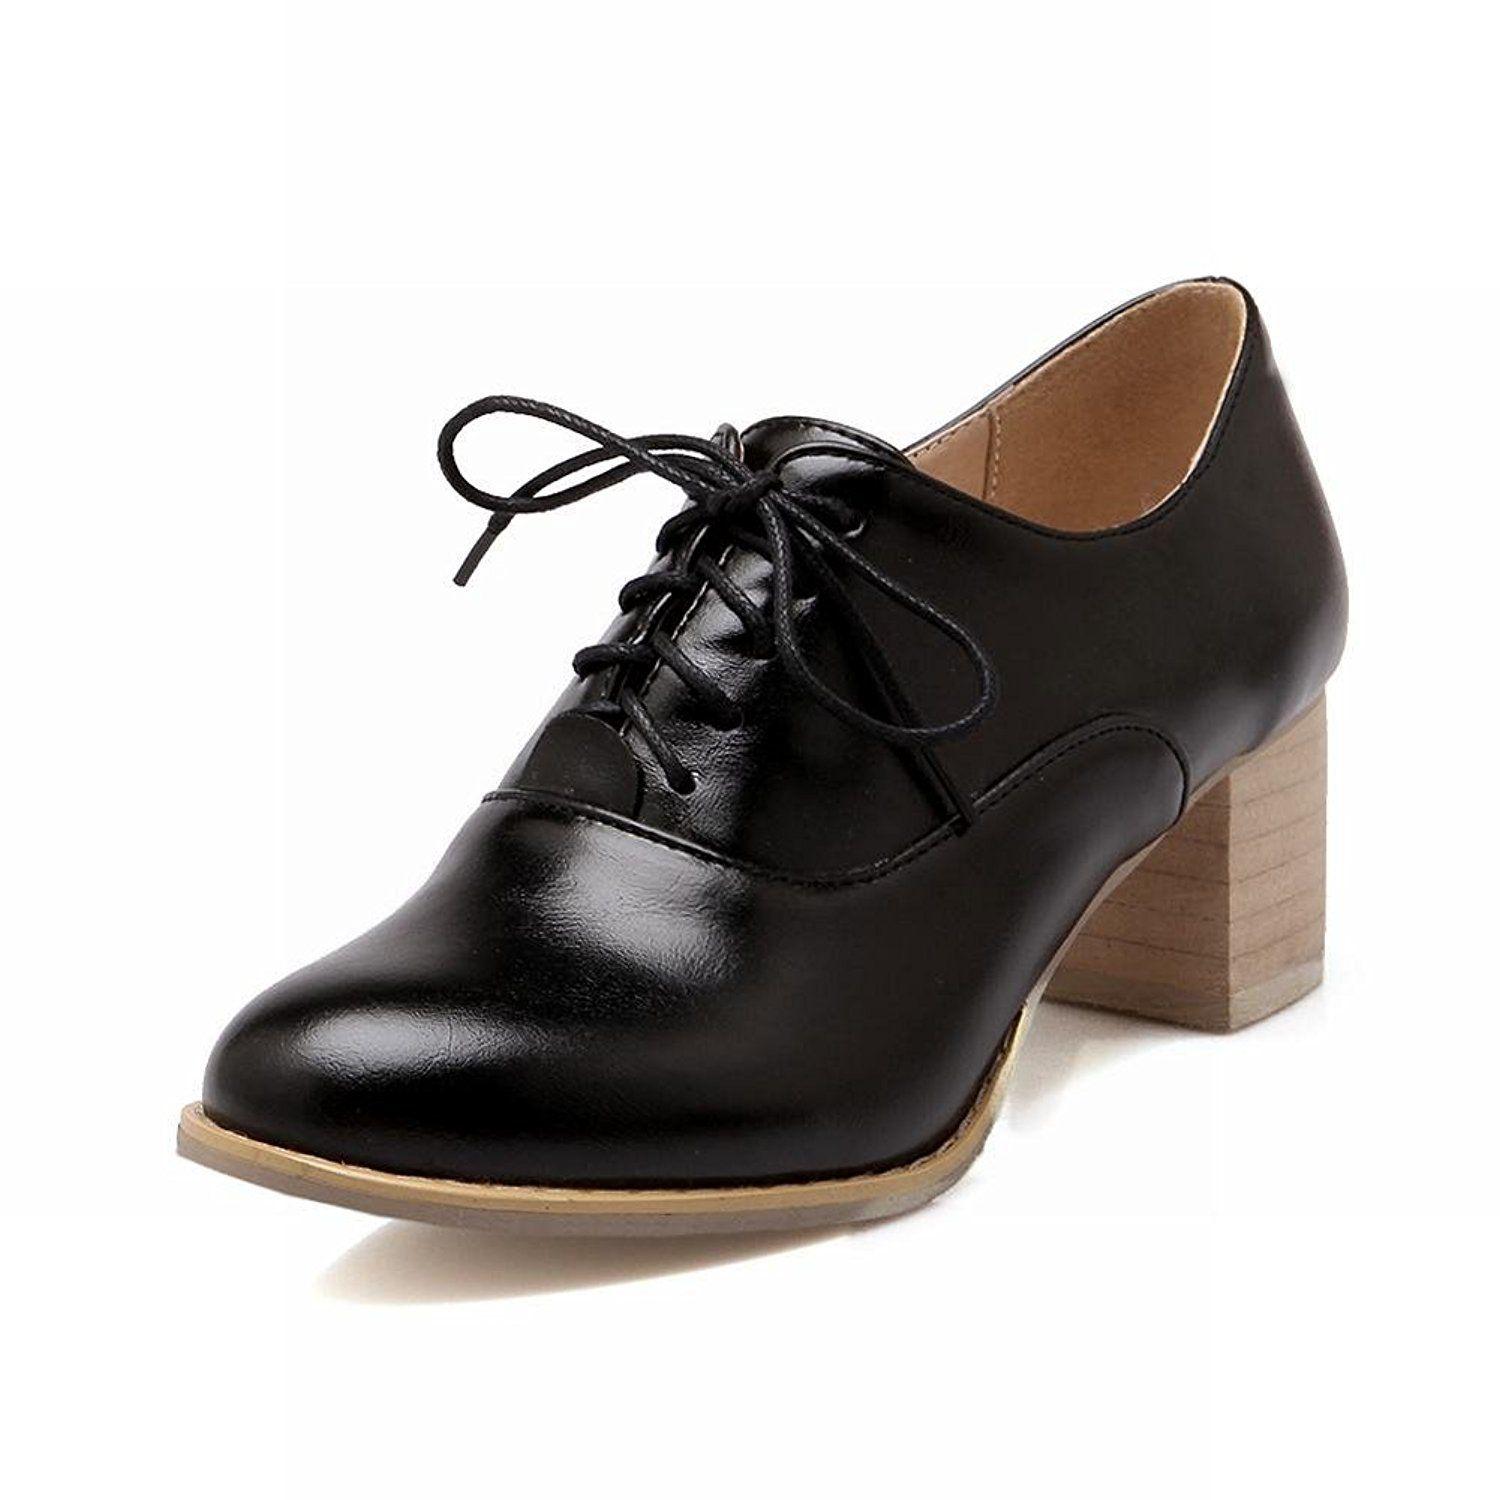 2a45f3c9396d Latasa Womens Elegant Leather Mid-heel Chunky Lace-up Oxford Shoes ...